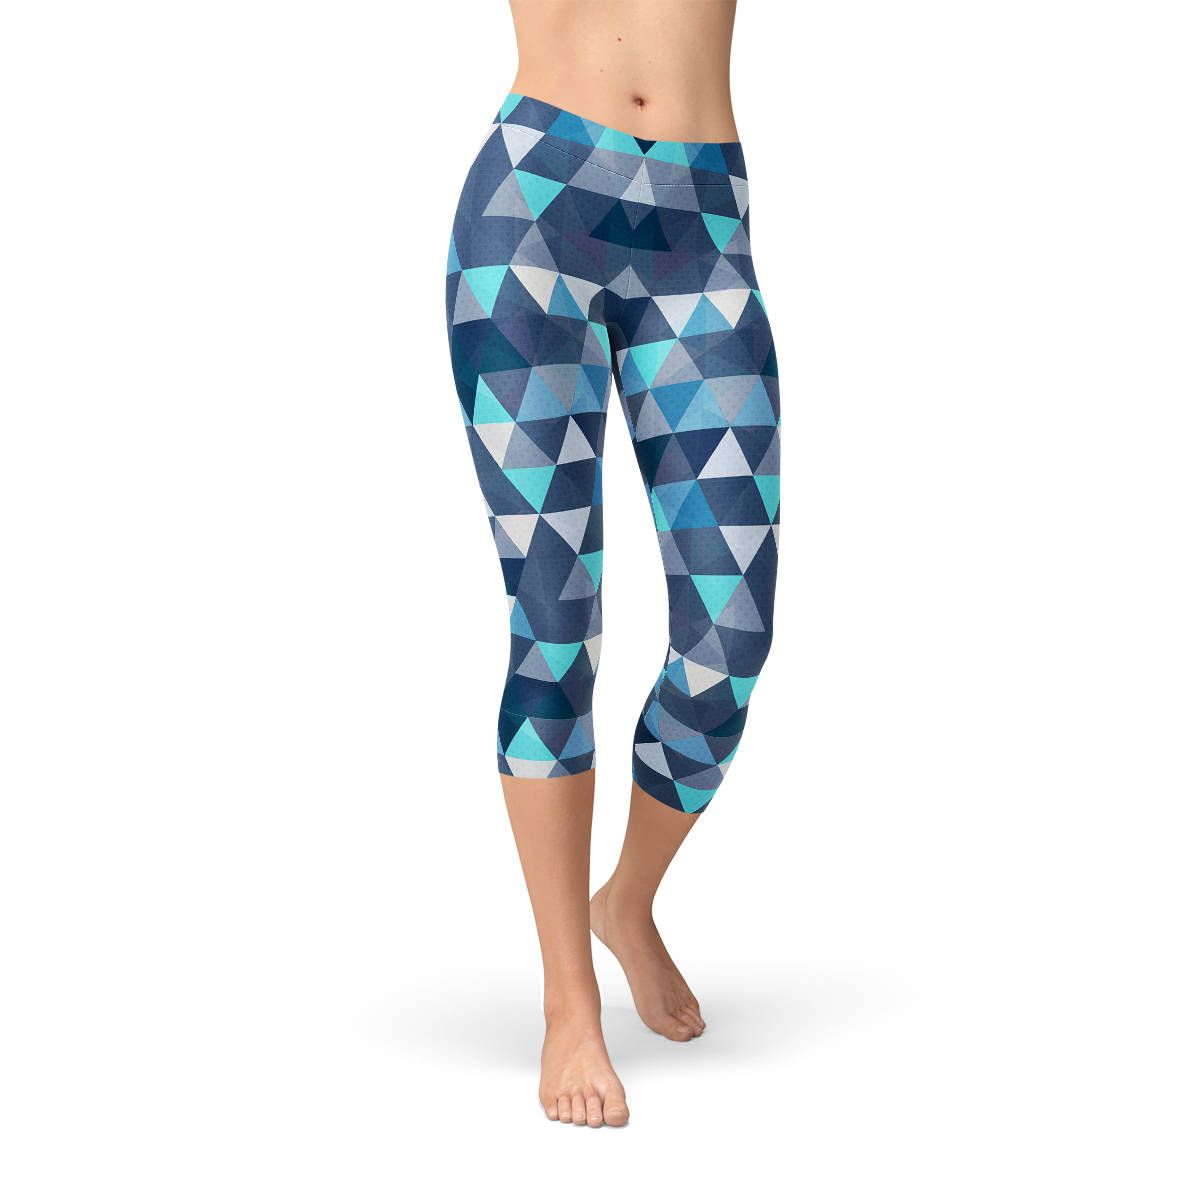 875d78d007f Colorful Blue Triangle Capri Leggings - Triangle Printed Pattern ...